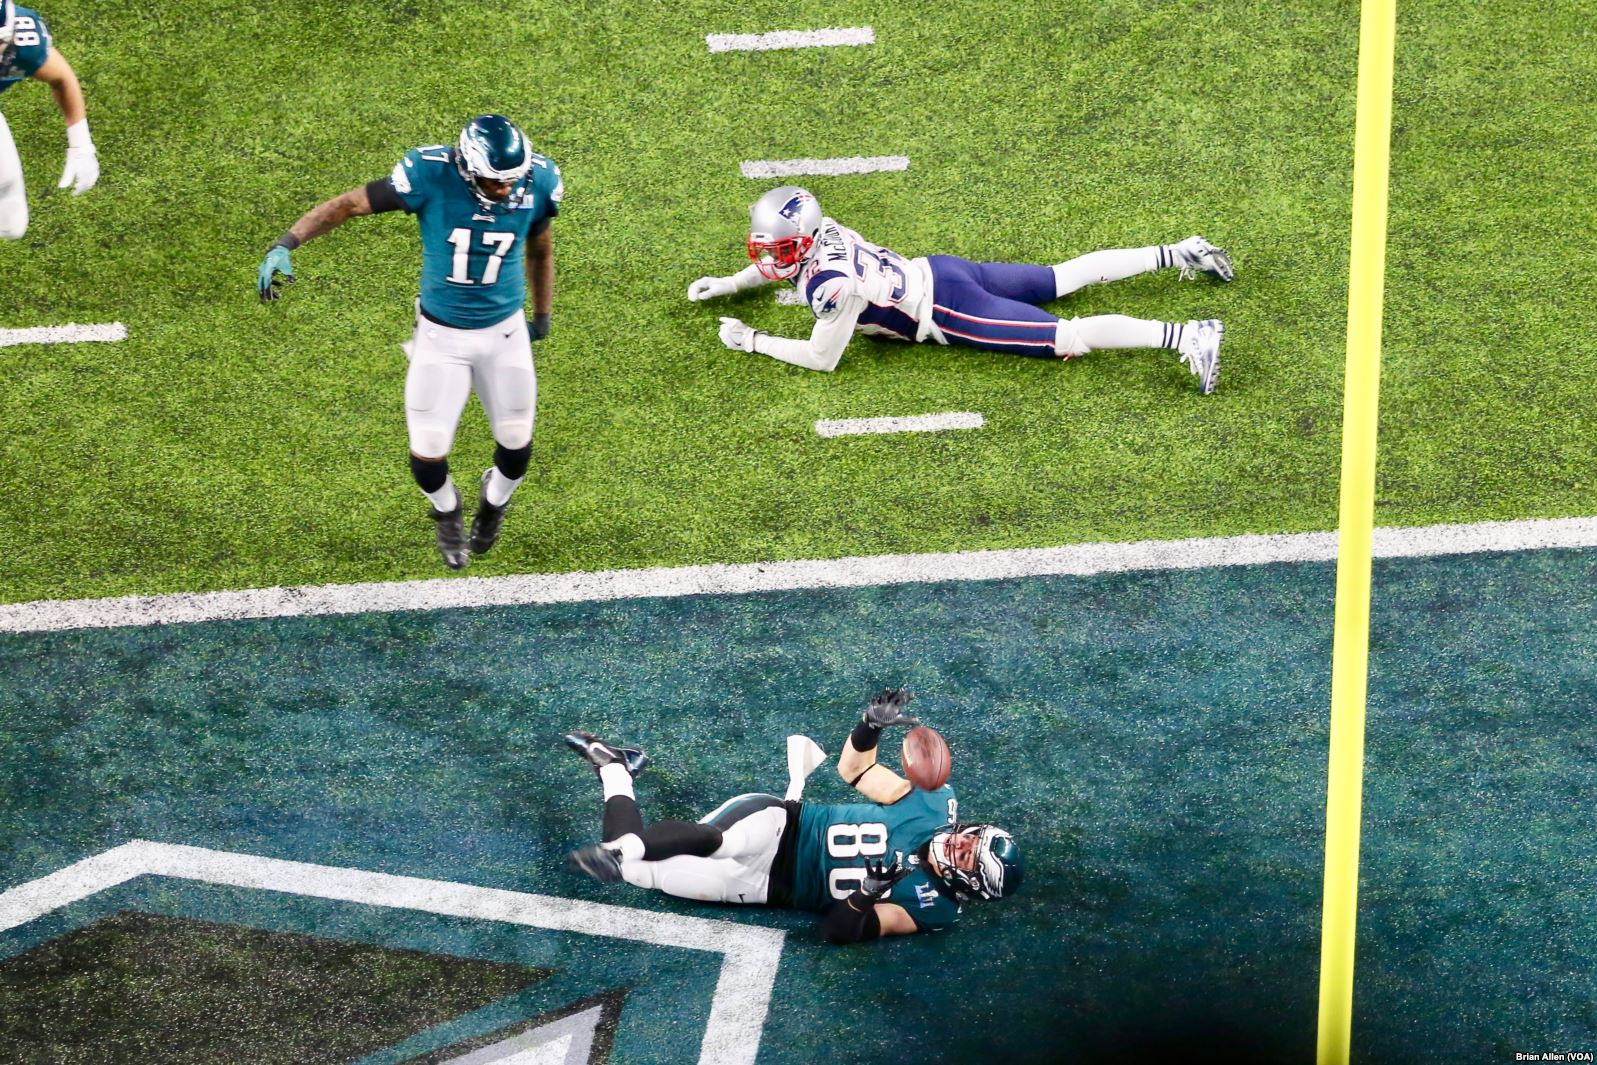 Zach Ertz (centre) of the Philadelphia Eagles after scoring the game-winning touchdown in Super Bowl LII (Brian Allen/VOA)